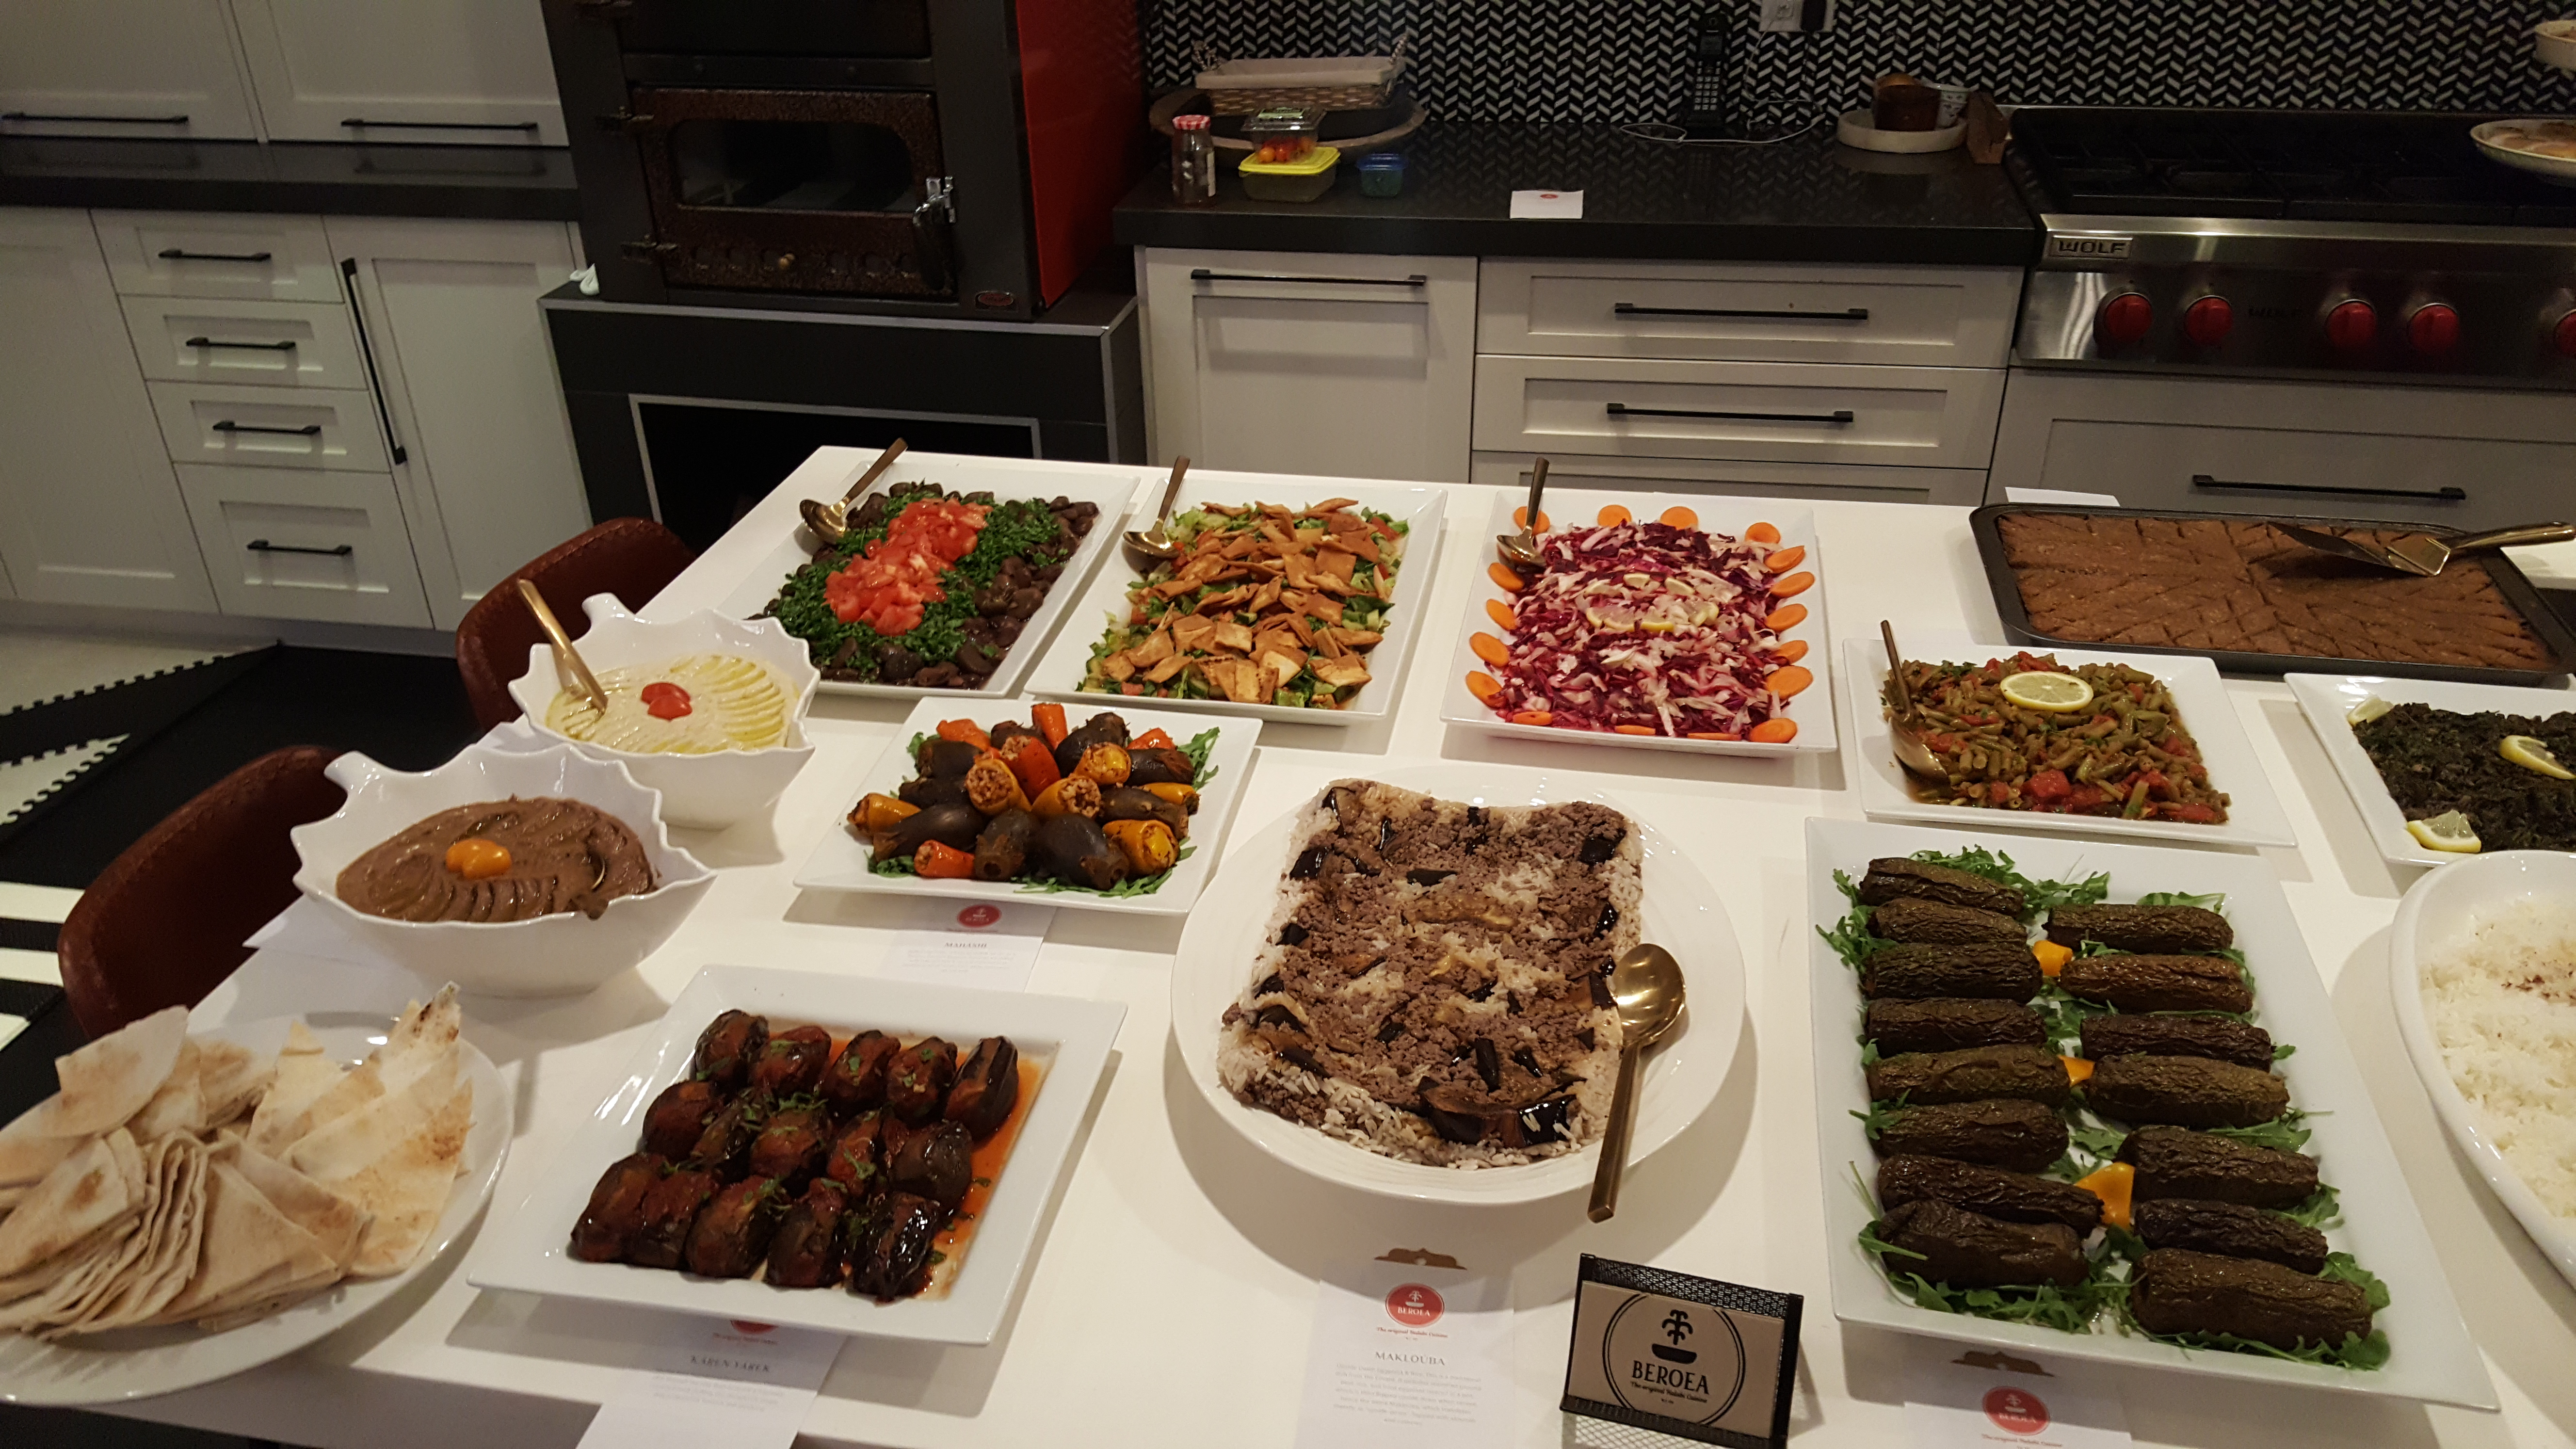 Gallery | Syrian catering in toronto | Ontario | Beroea Kitchen